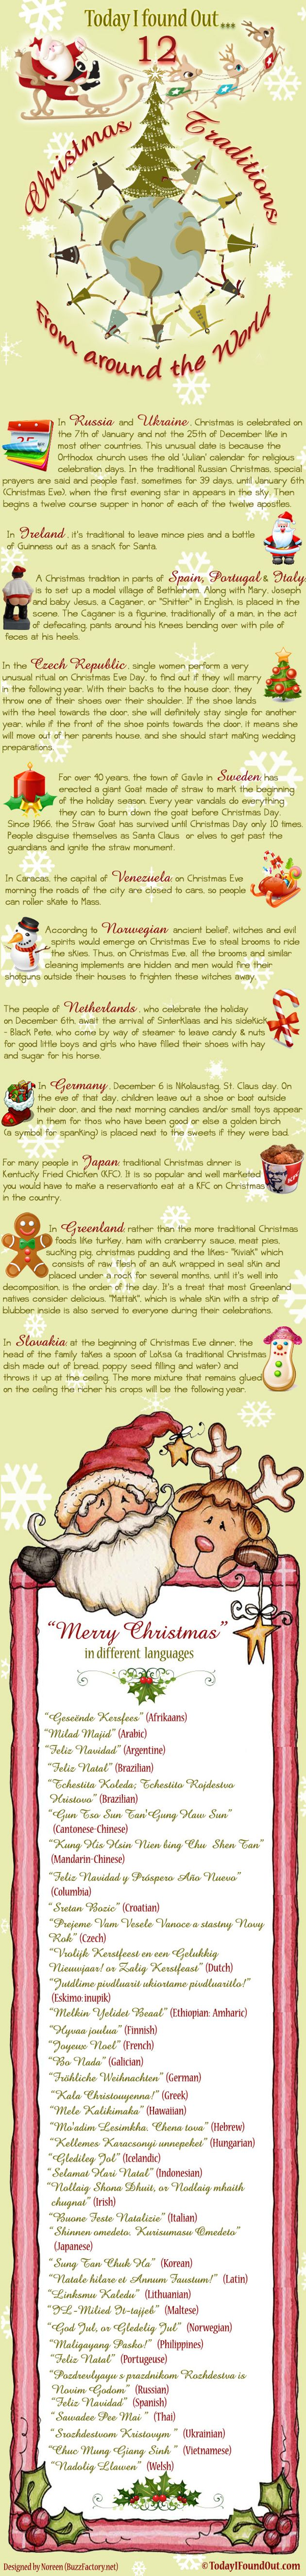 Fun Christmas Traditions From Around The World - Infographic